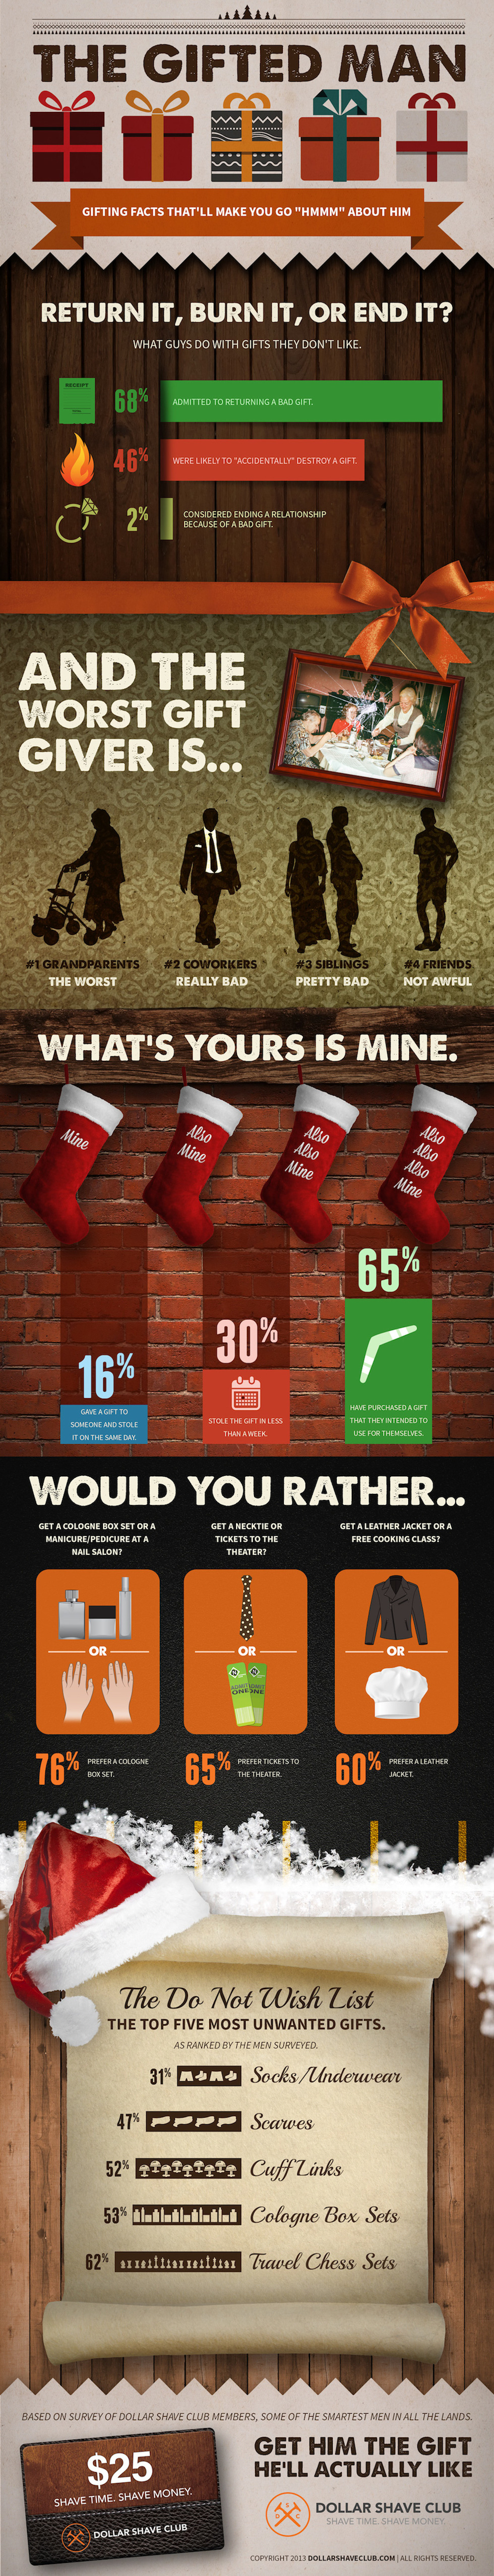 DollarShaveClub_Holiday_Infographic